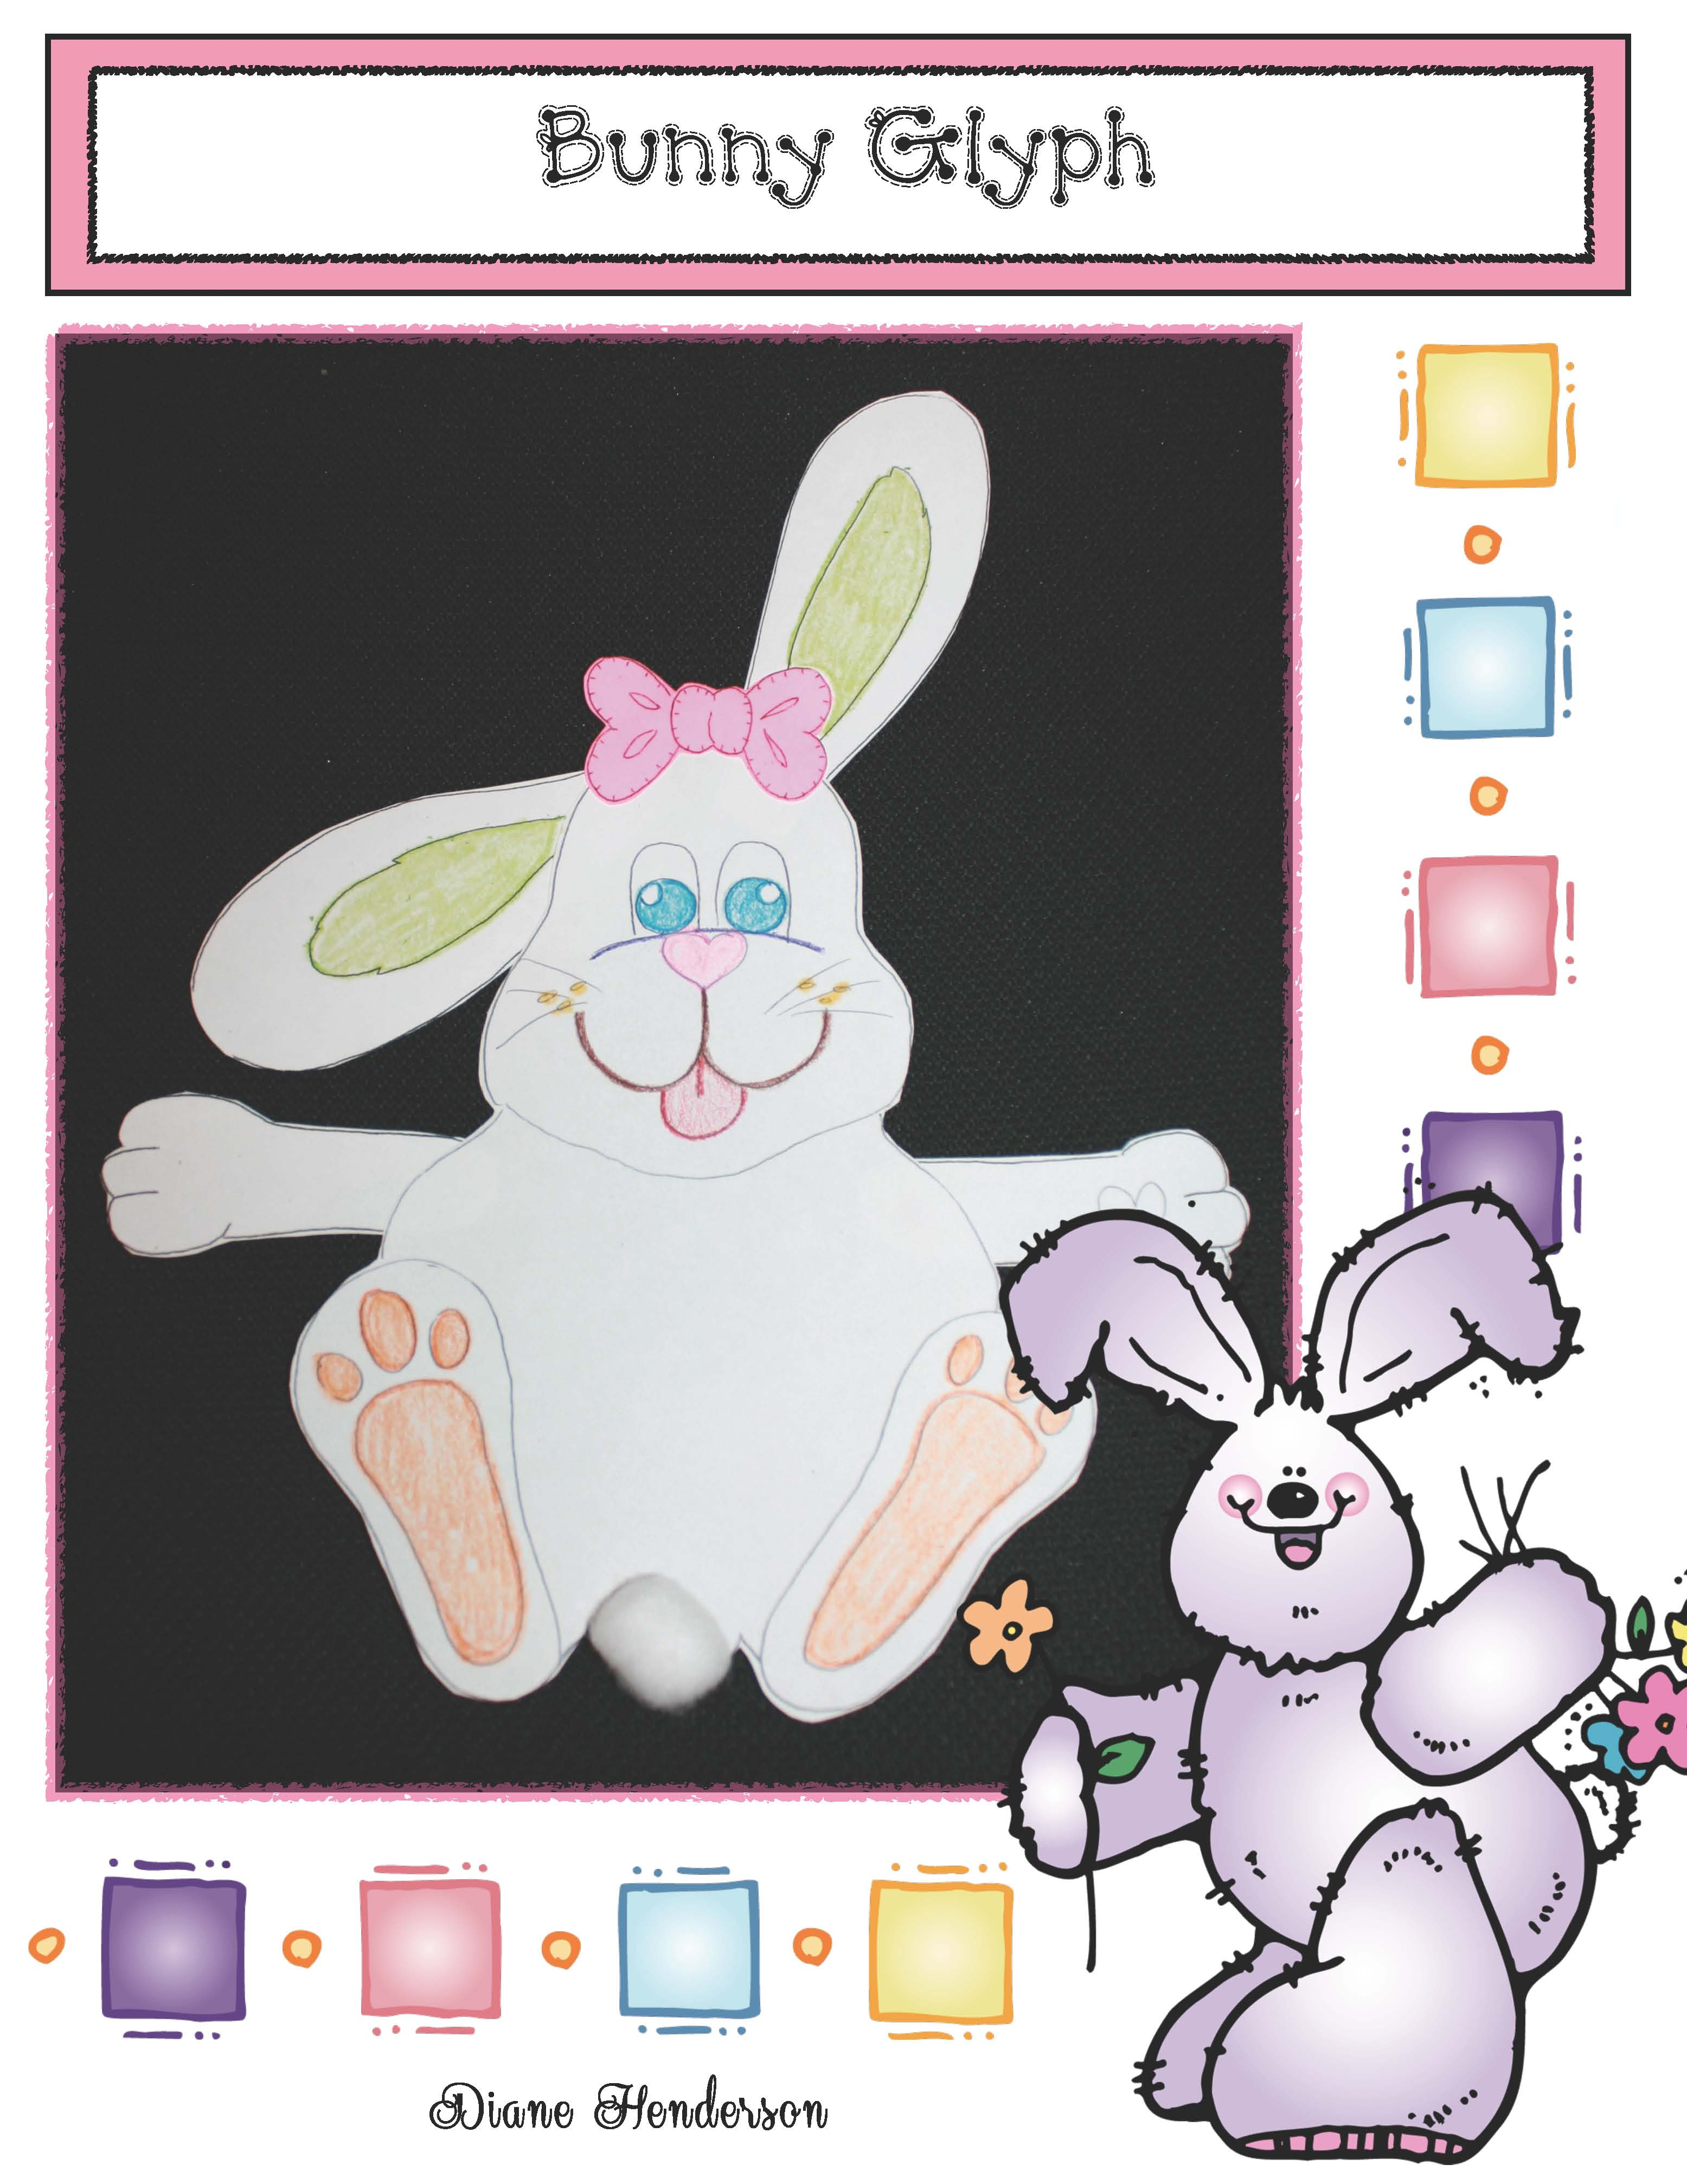 bunny glyph, spring glyphs, glyphs, egg glyph, Easter crafts, easter activities, spring bulletin board ideas, venn diagram activities, bunny crafts, common core activities for spring, spring games, venn friends